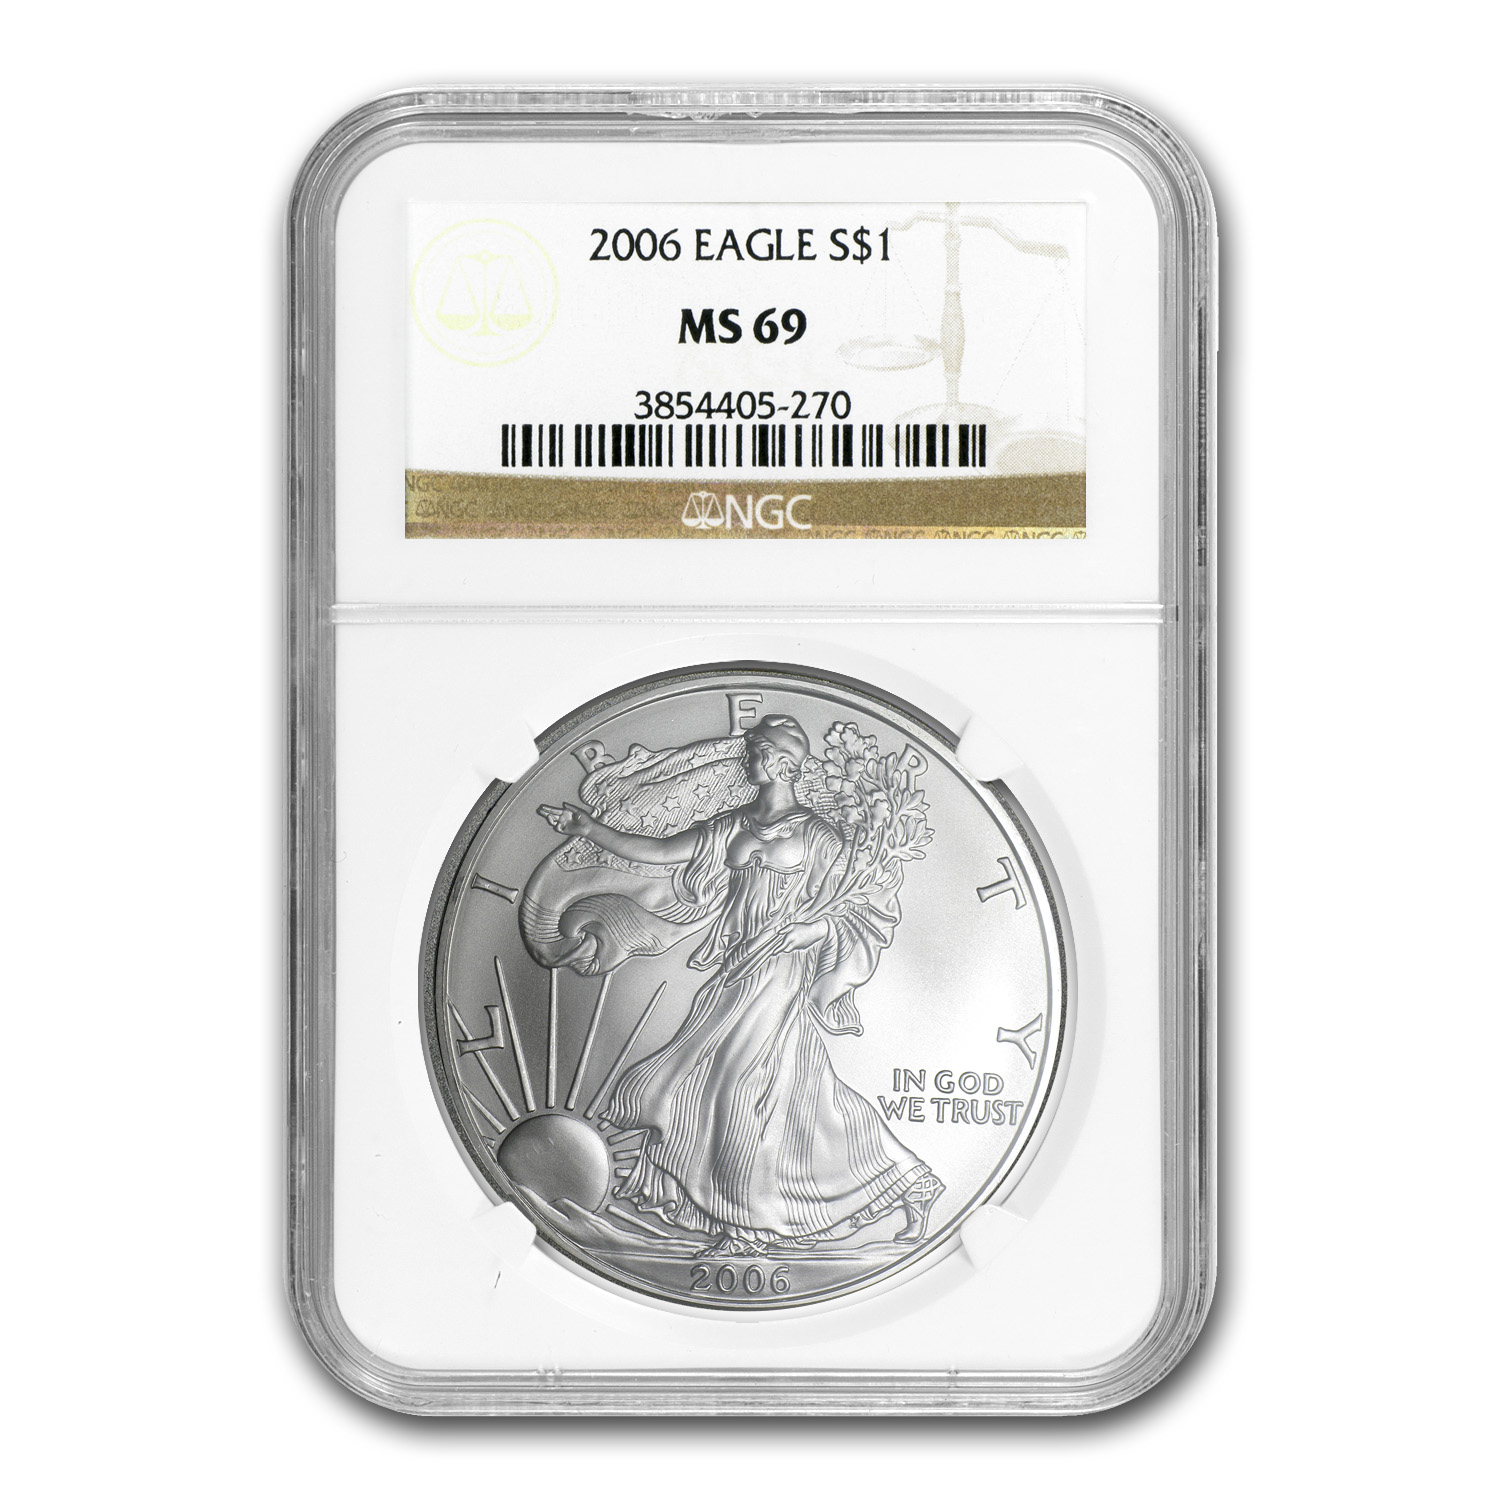 2006 Silver American Eagle MS-69 NGC